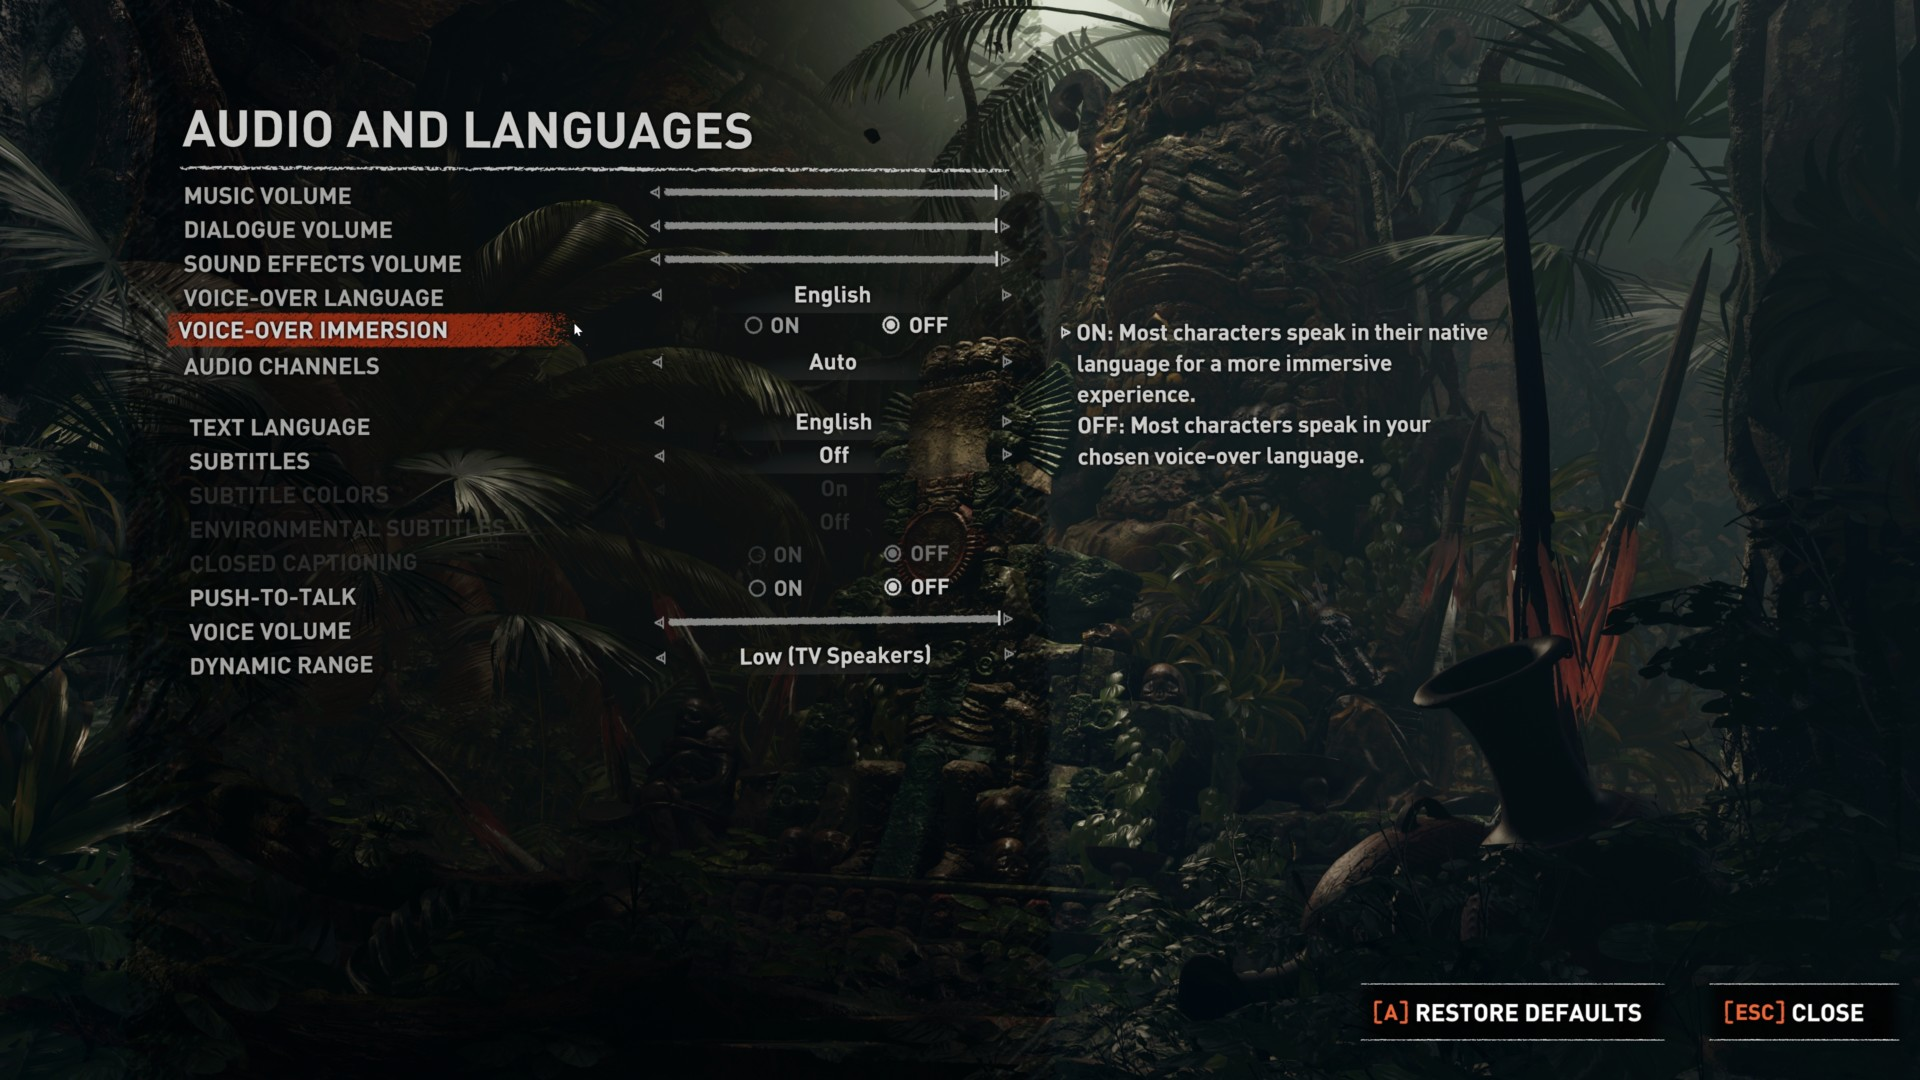 shadow-of-the-tomb-raider-audio-and-languages